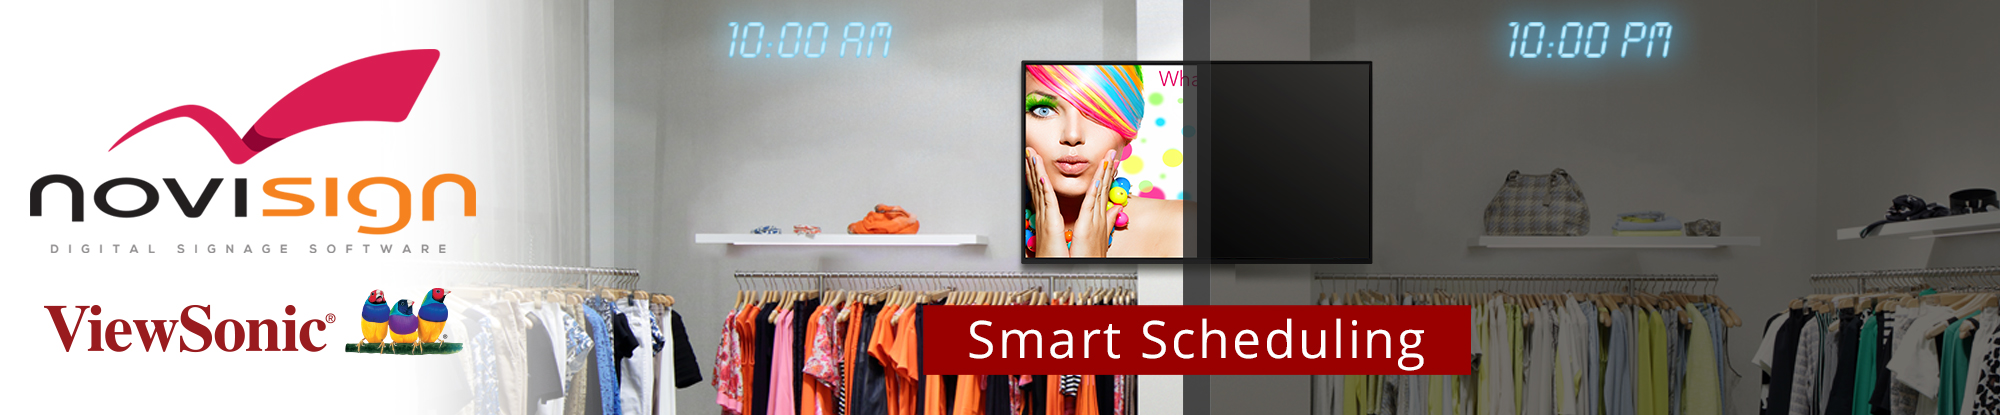 ViewSonic and NoviSign Digital Signage Announce Partnership to Deliver New Stunning Display and Software Solutions to Transform Education and Restaurant Spaces